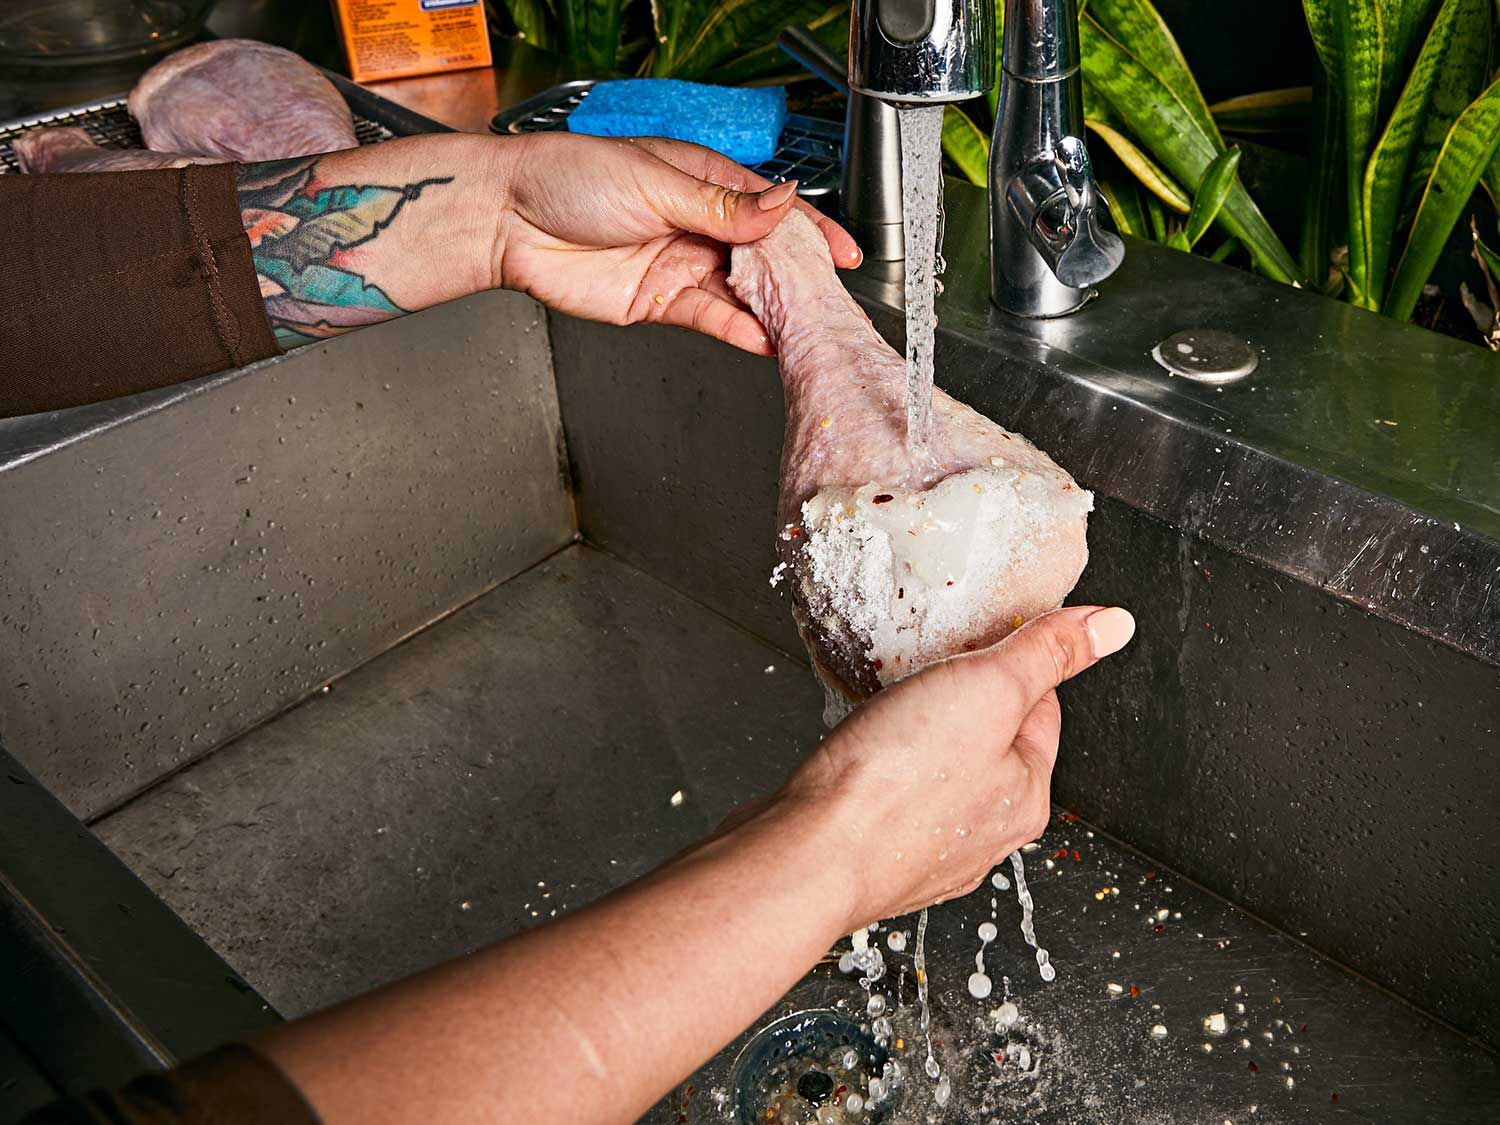 Remove the dry brine with plenty of cold running water.